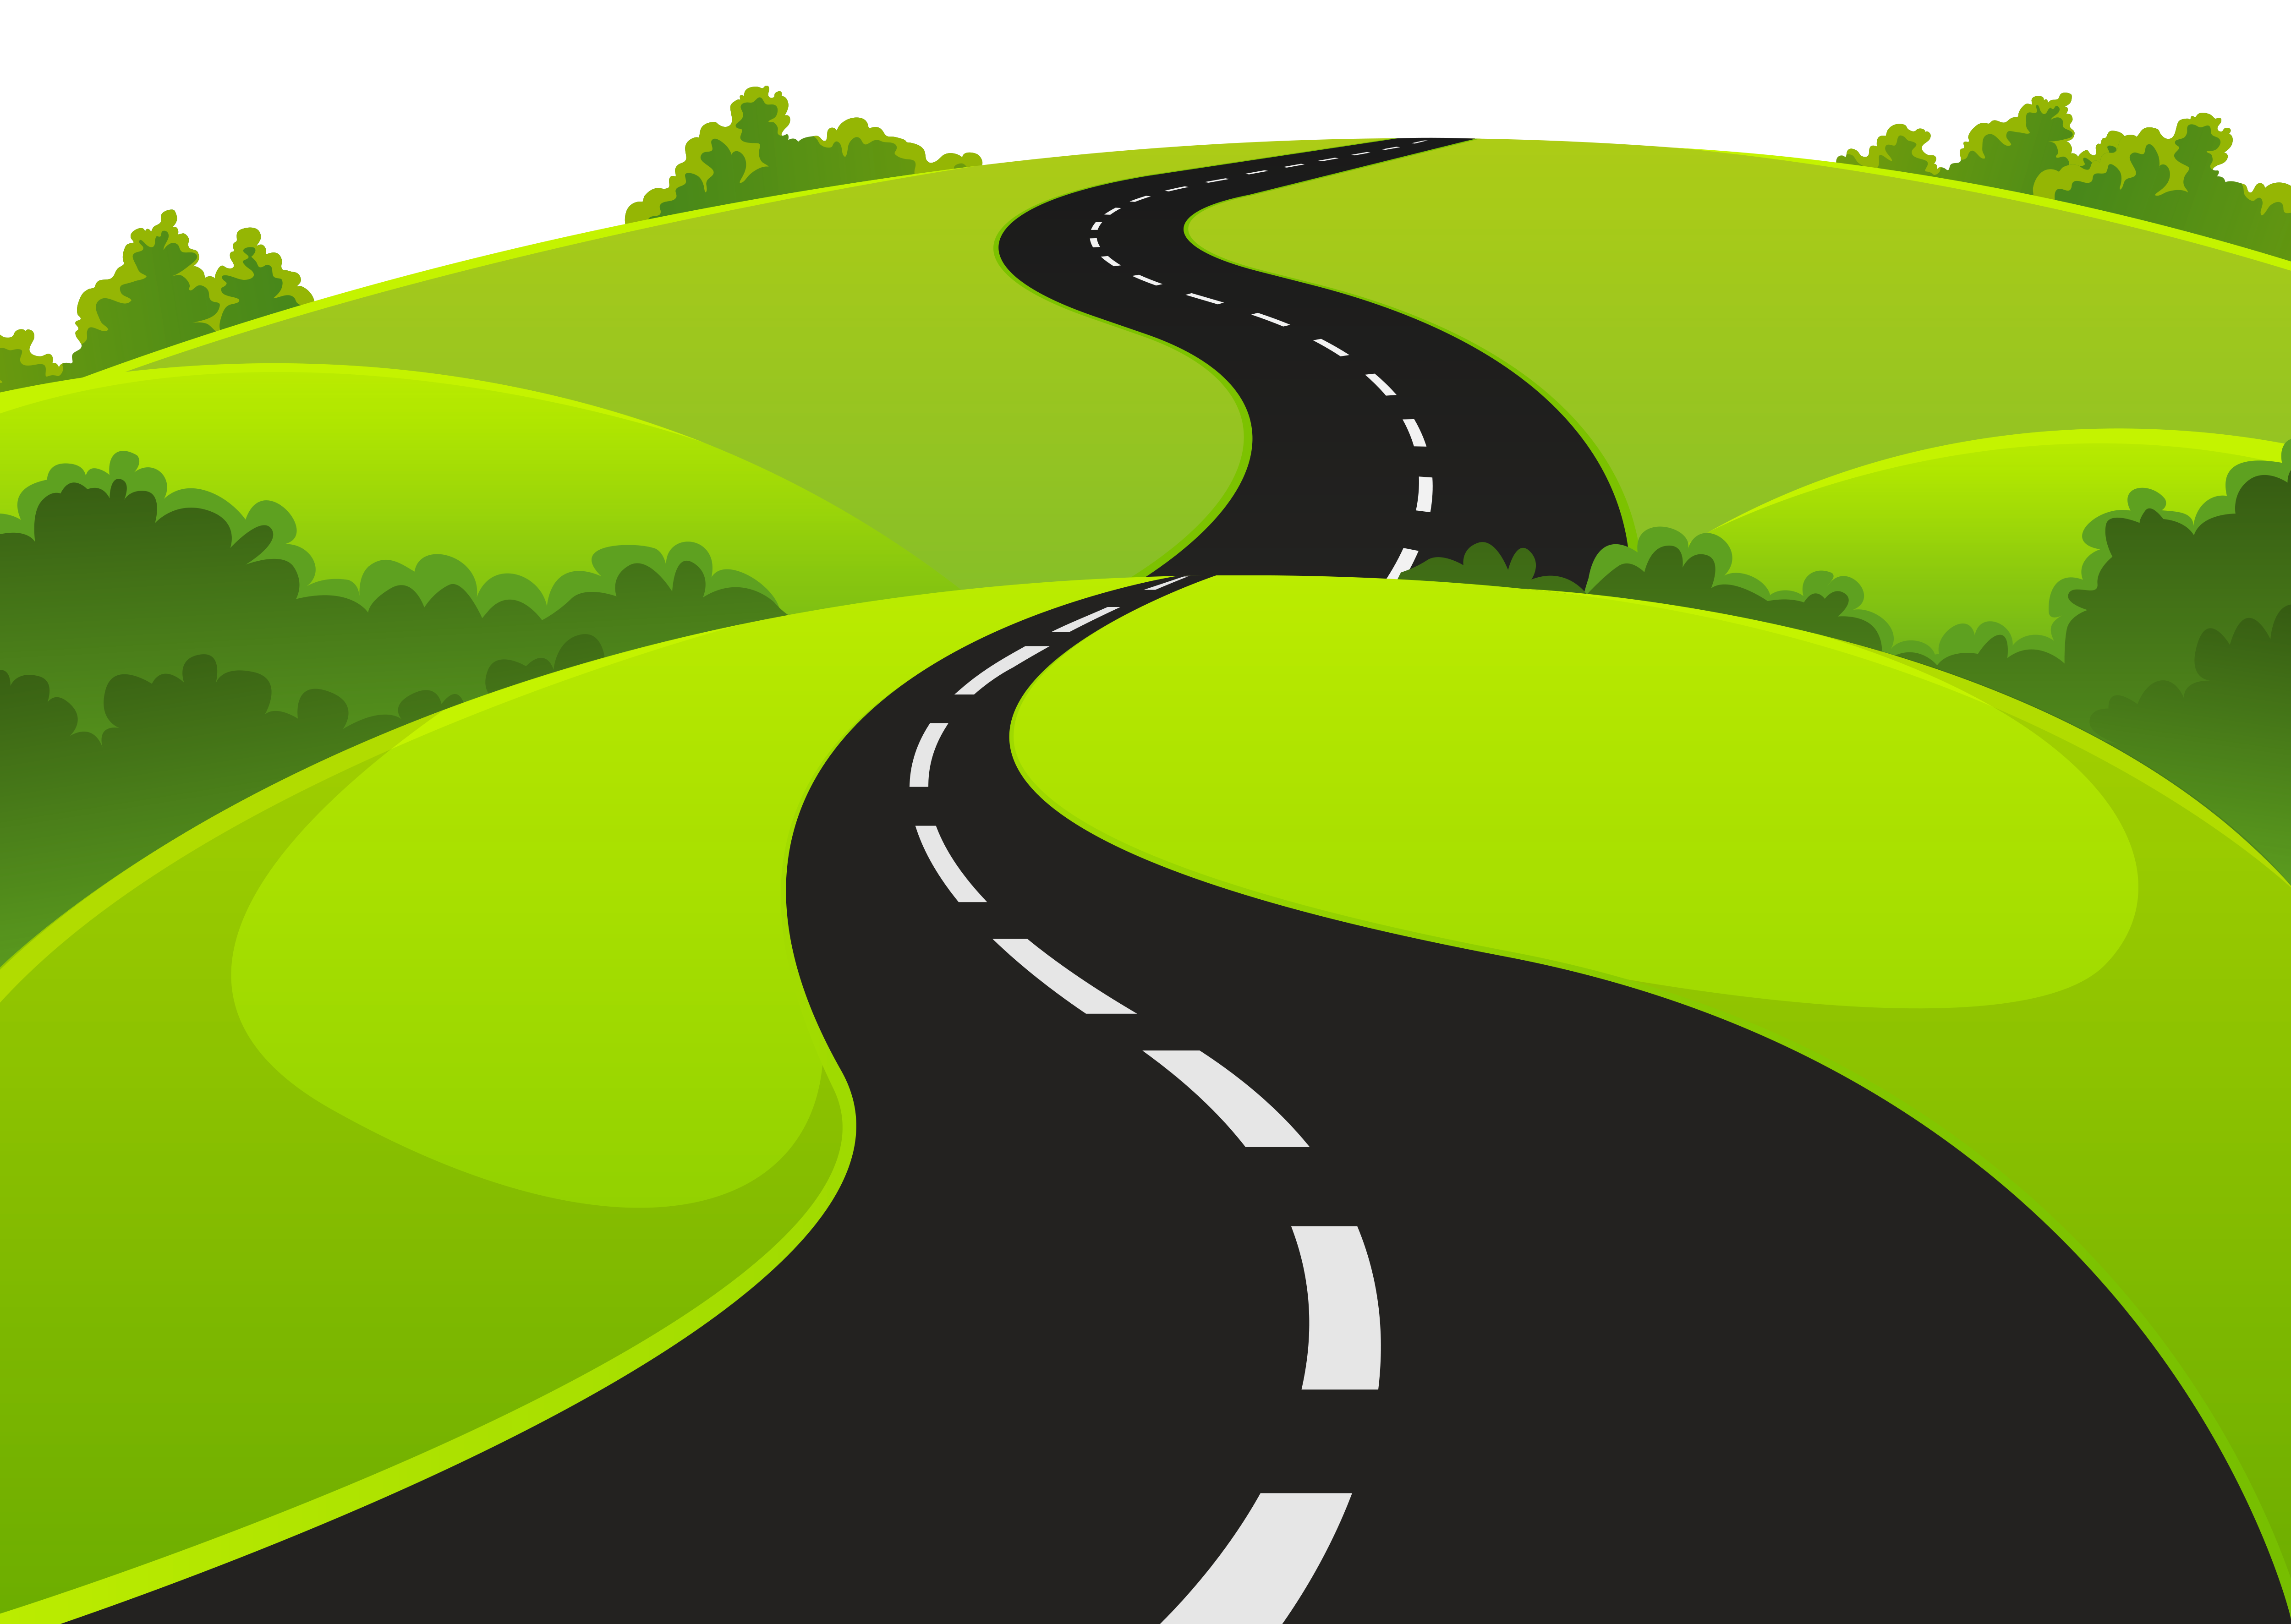 Road clipart. And grass png picture